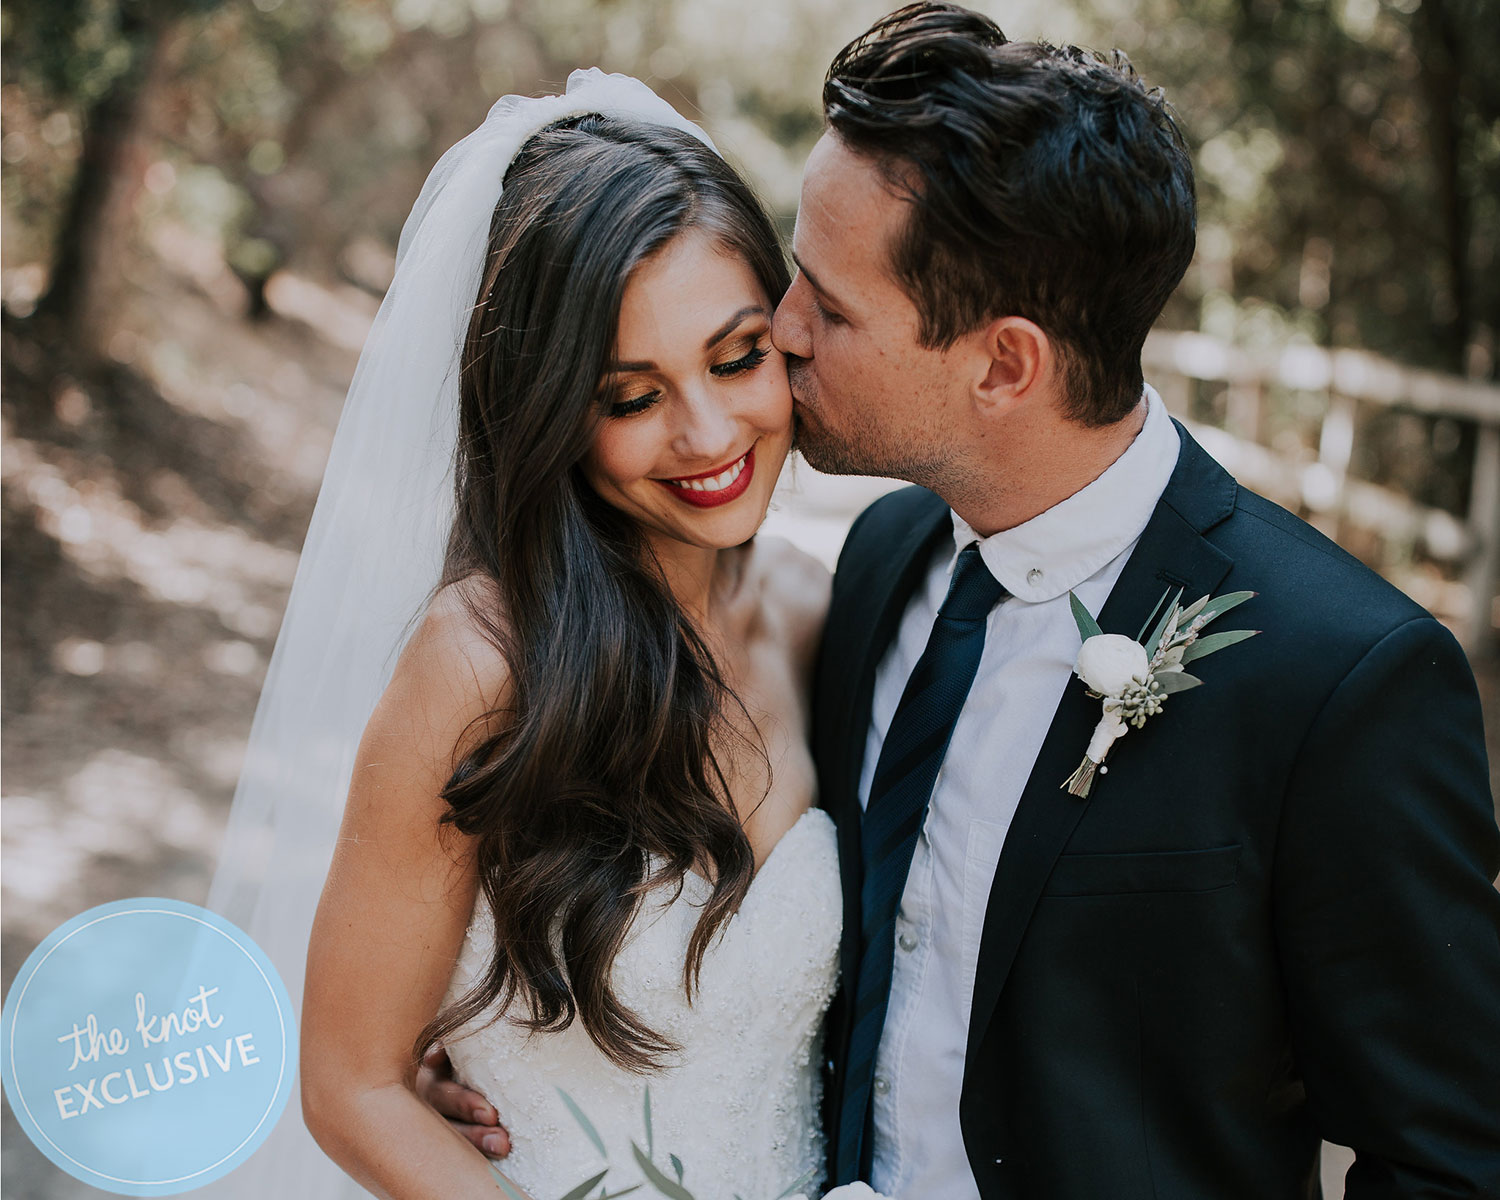 Britt Nilsson and Jeremy Byrne wedding